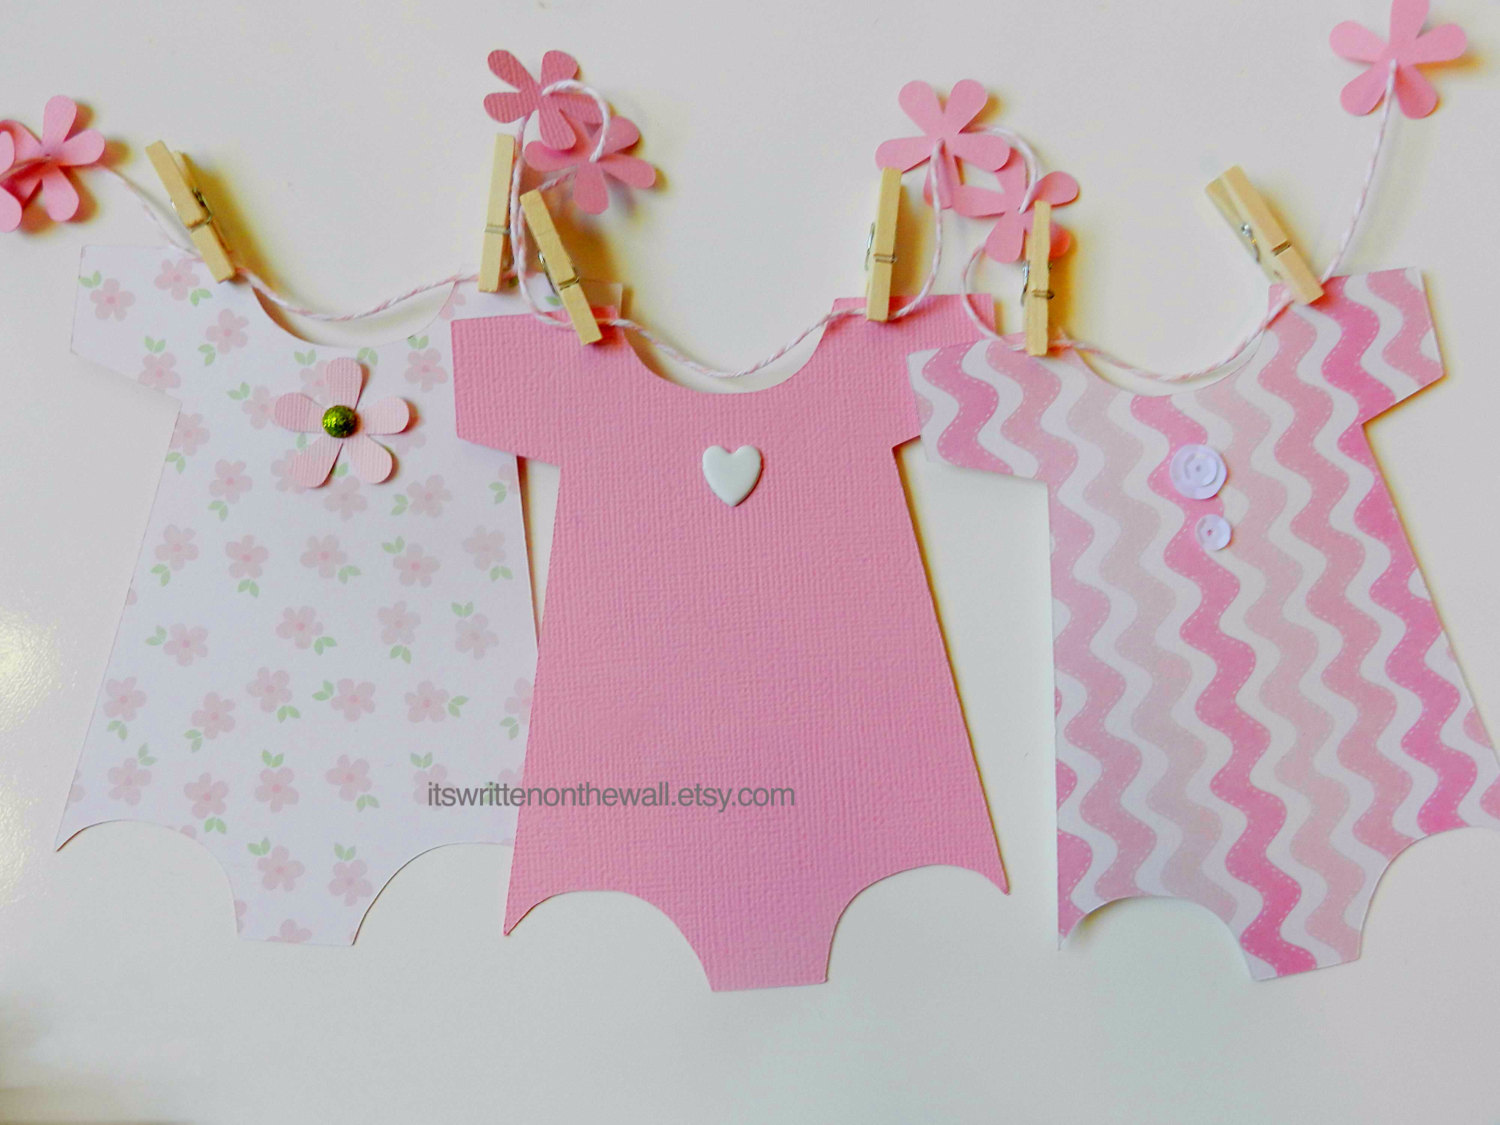 Marvelous Cute Ideas For Your Baby Shower Gotta See!